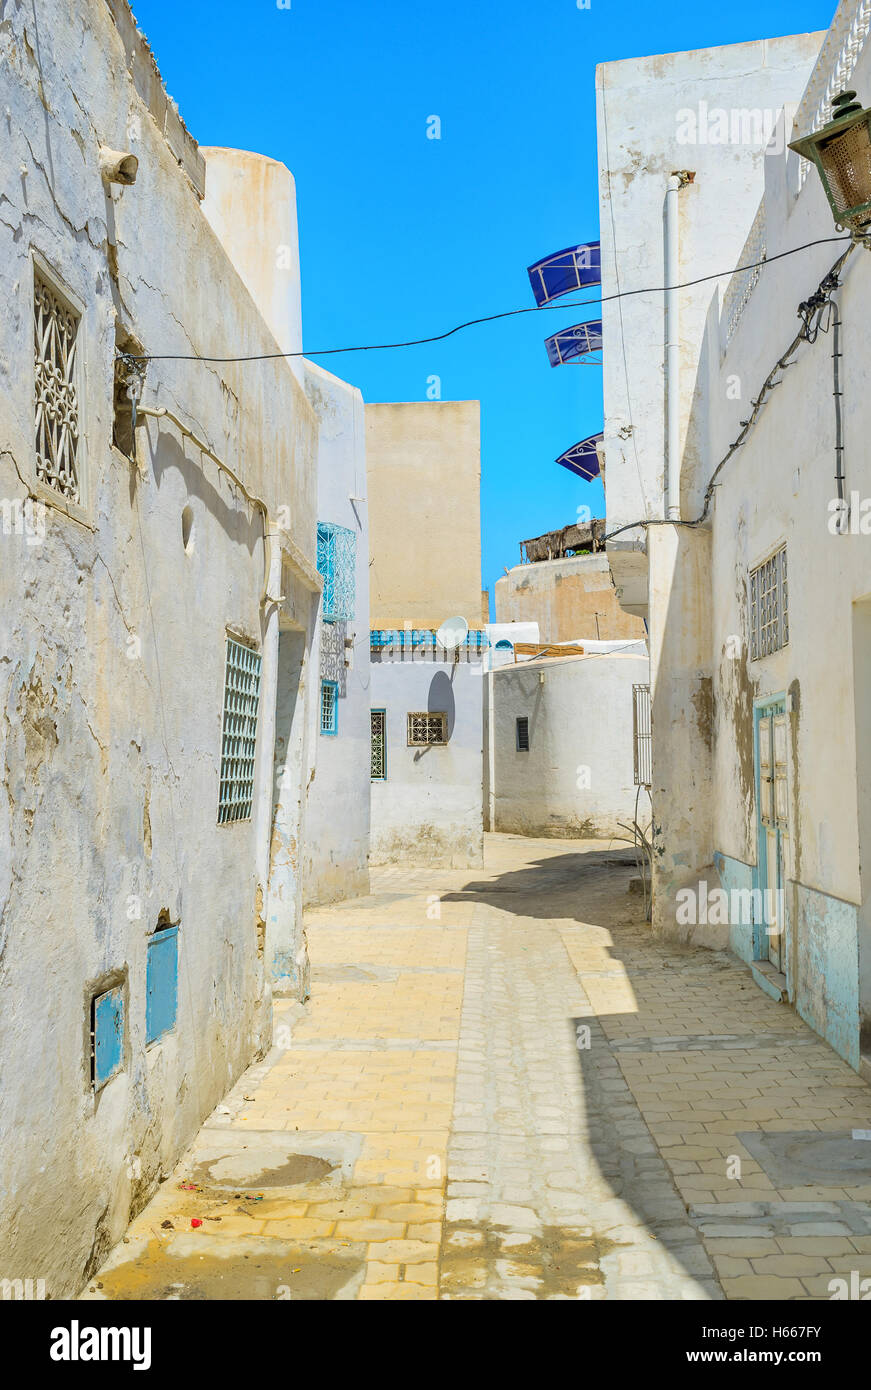 The old houses of Medina look the same outside, all their beauty is inside, Kairouan, Tunisia. - Stock Image